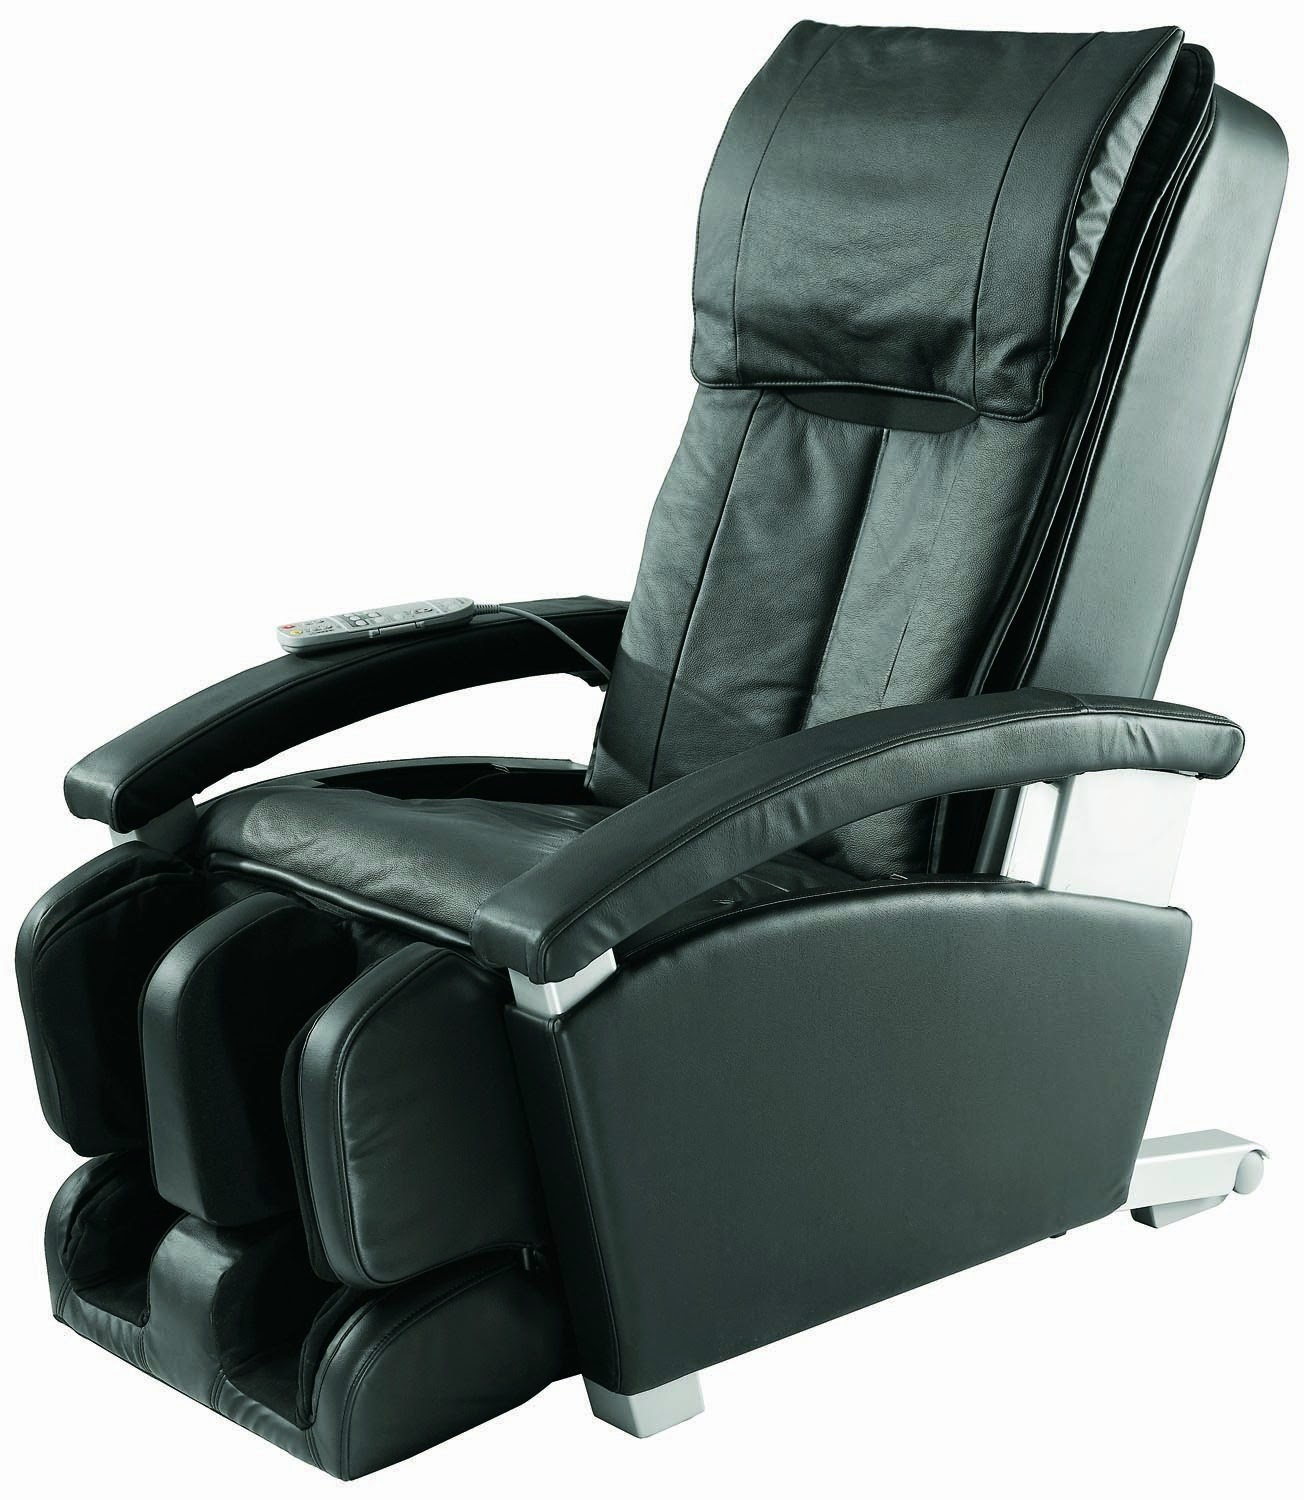 Mode Chair Gaming Chairs Cheap Leg And Foot Massager